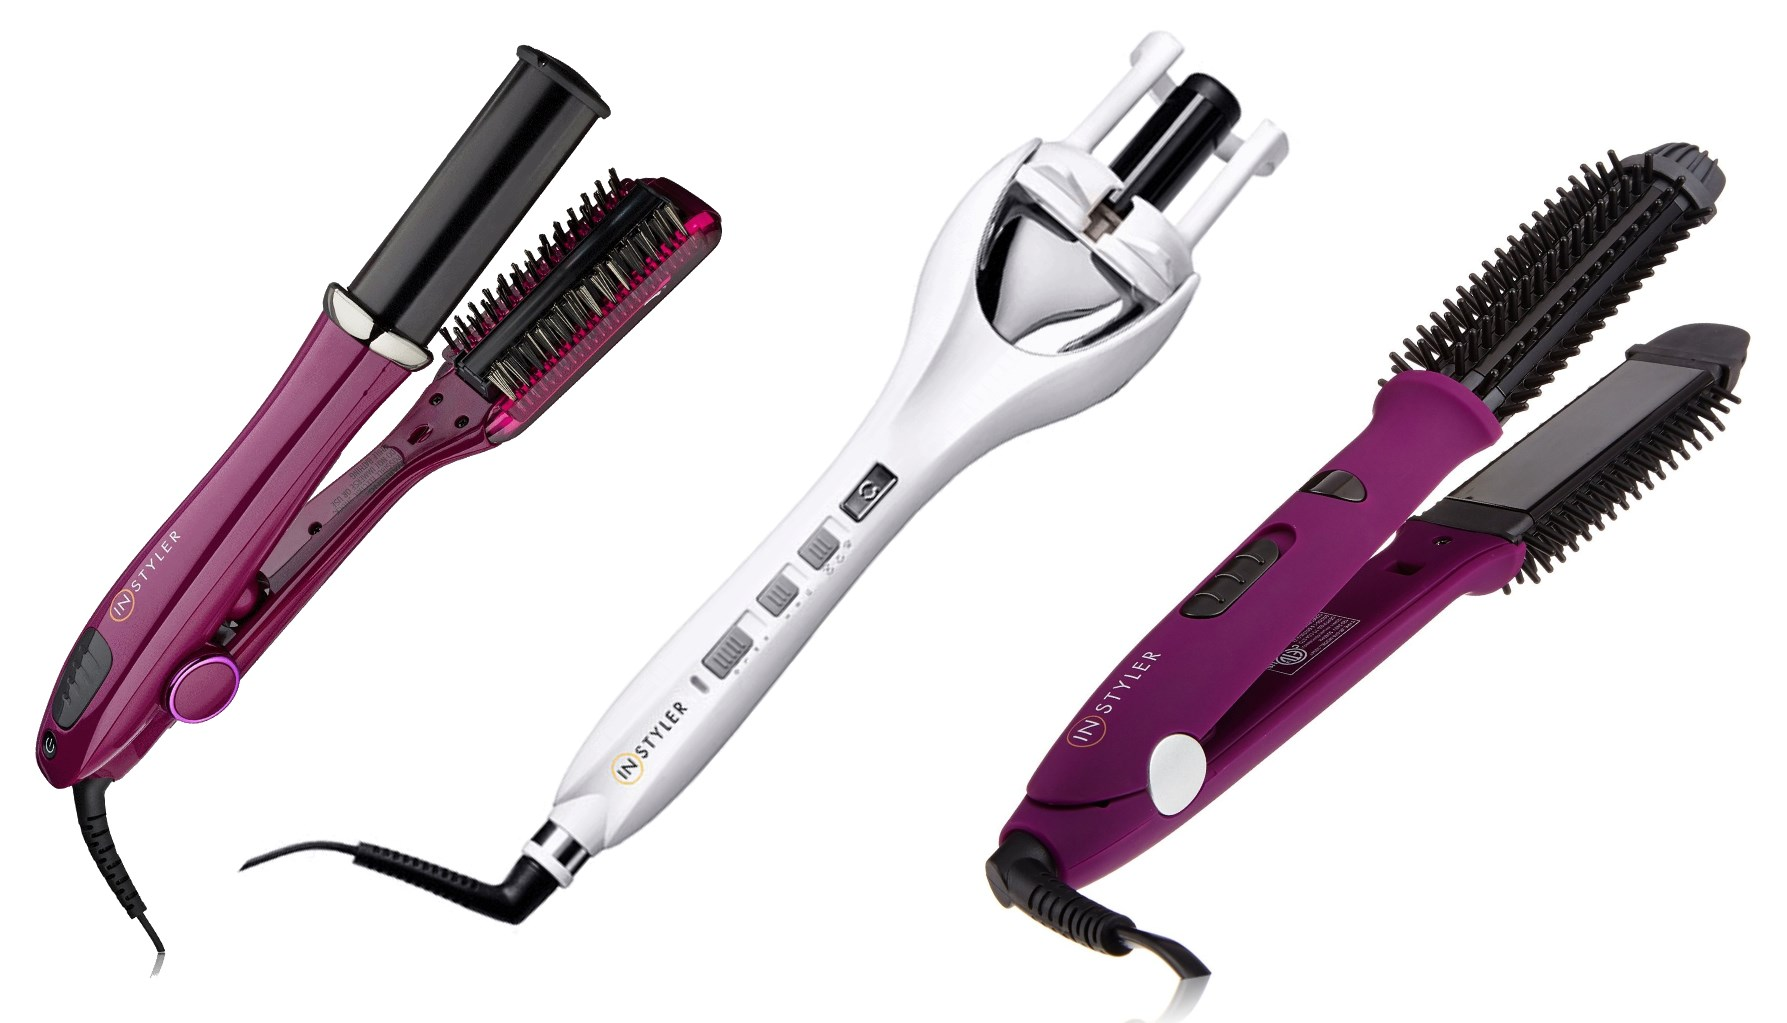 pictures of hair styling tools check out this great new hair tool tiger strypes 9024